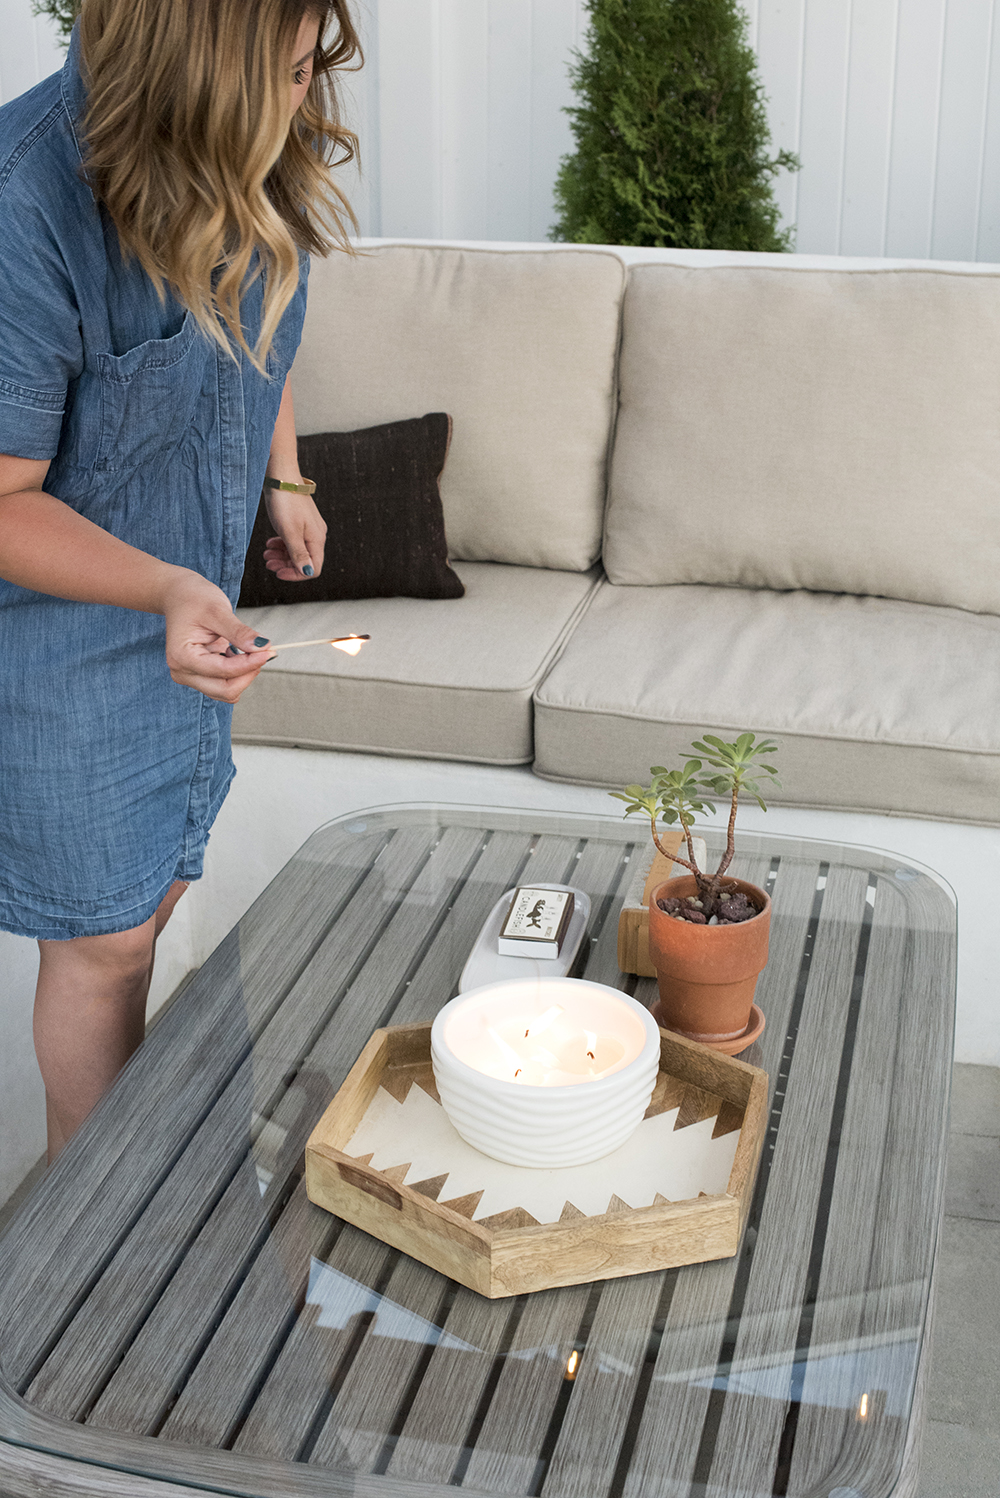 Lighting Candles on the Patio